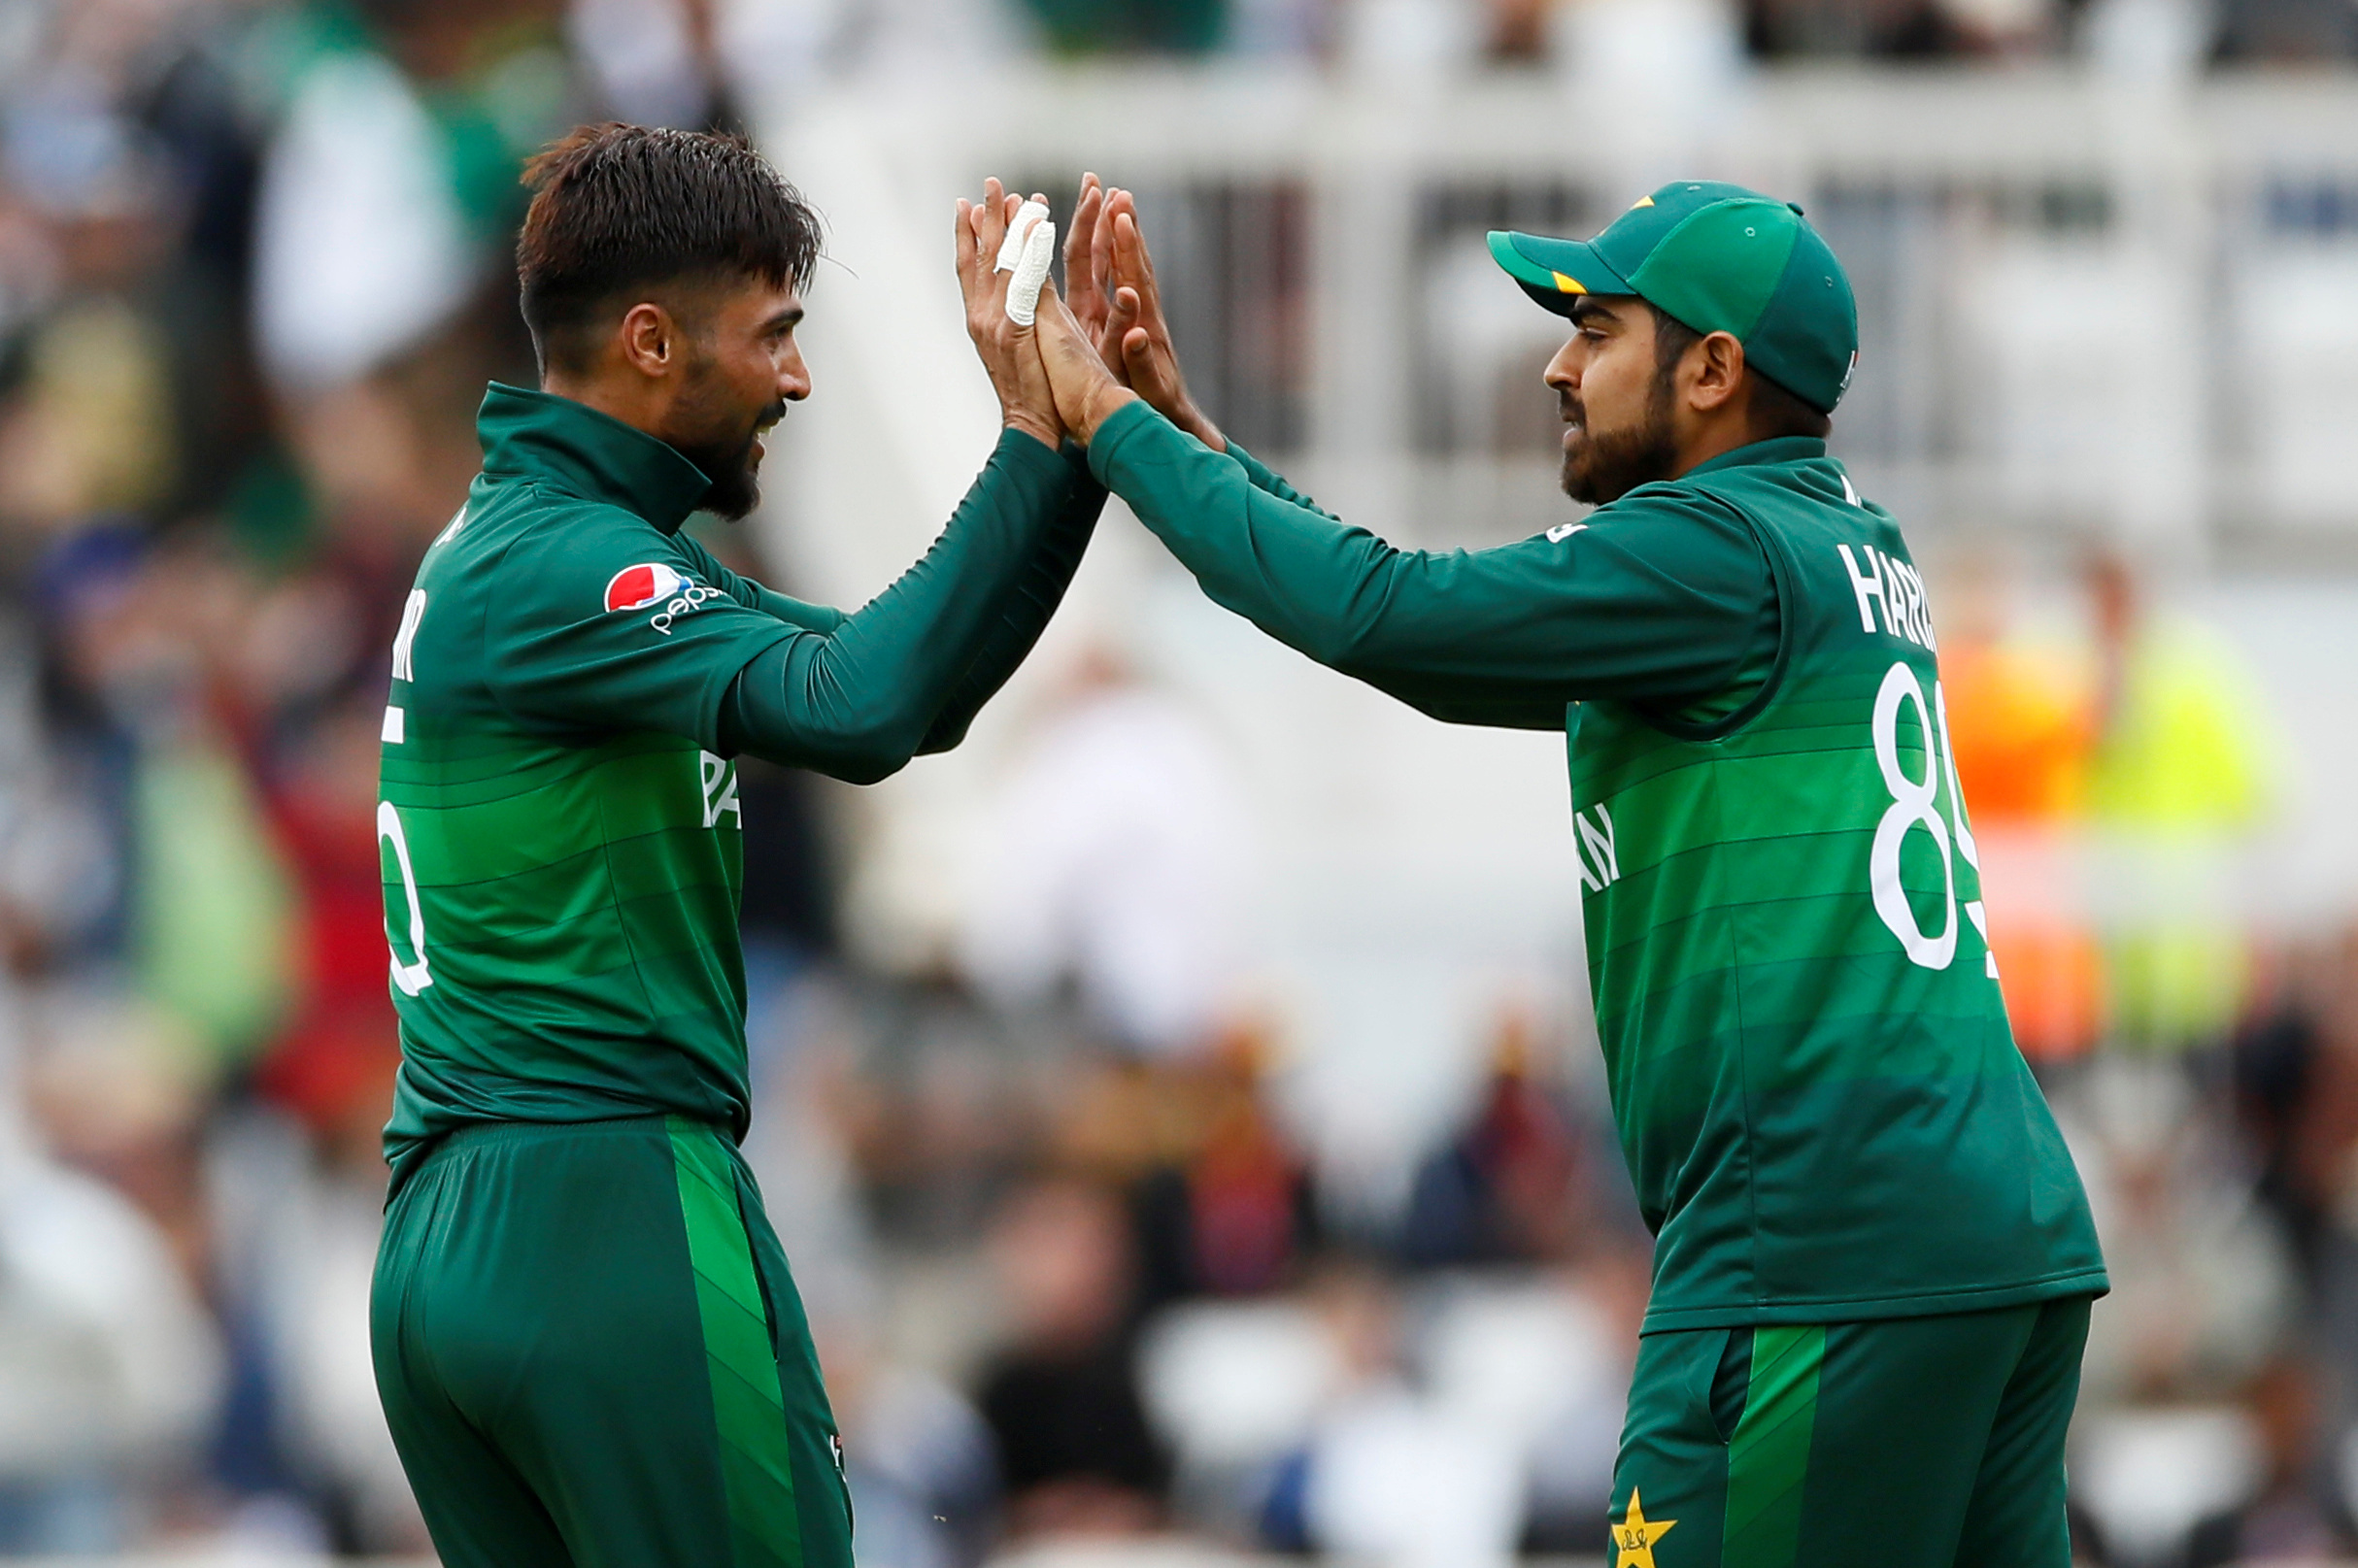 FILE PHOTO: Cricket - ICC Cricket World Cup - West Indies v Pakistan - Trent Bridge, Nottingham, Britain - May 31, 2019   Pakistan's Mohammad Amir celebrates with Haris Sohail after taking the wicket of West Indies' Chris Gayle    Action Images via Reuters/Jason Cairnduff/File Photo